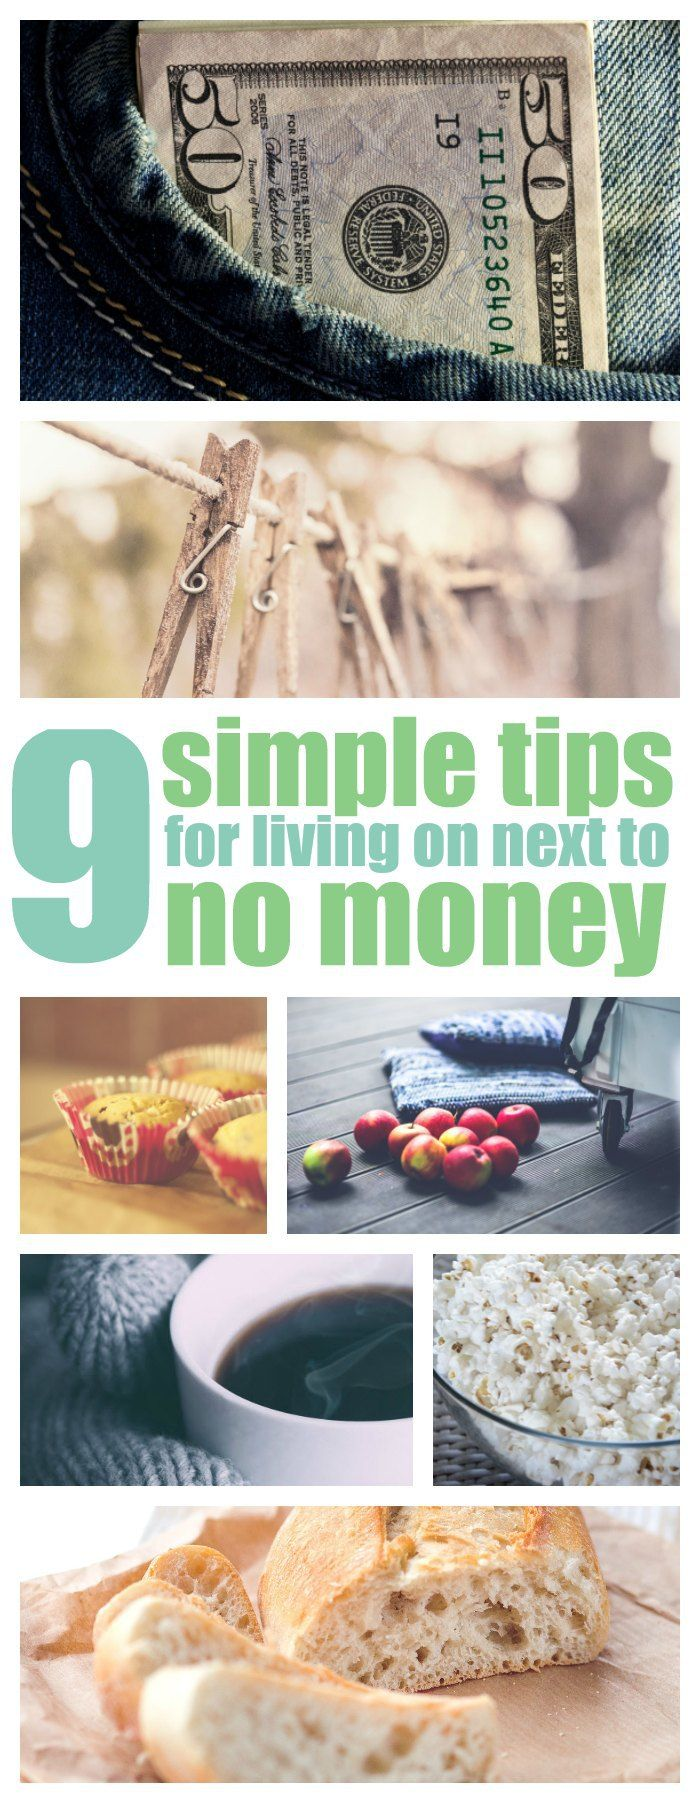 Money saving tips for when you're living on next to nothing.